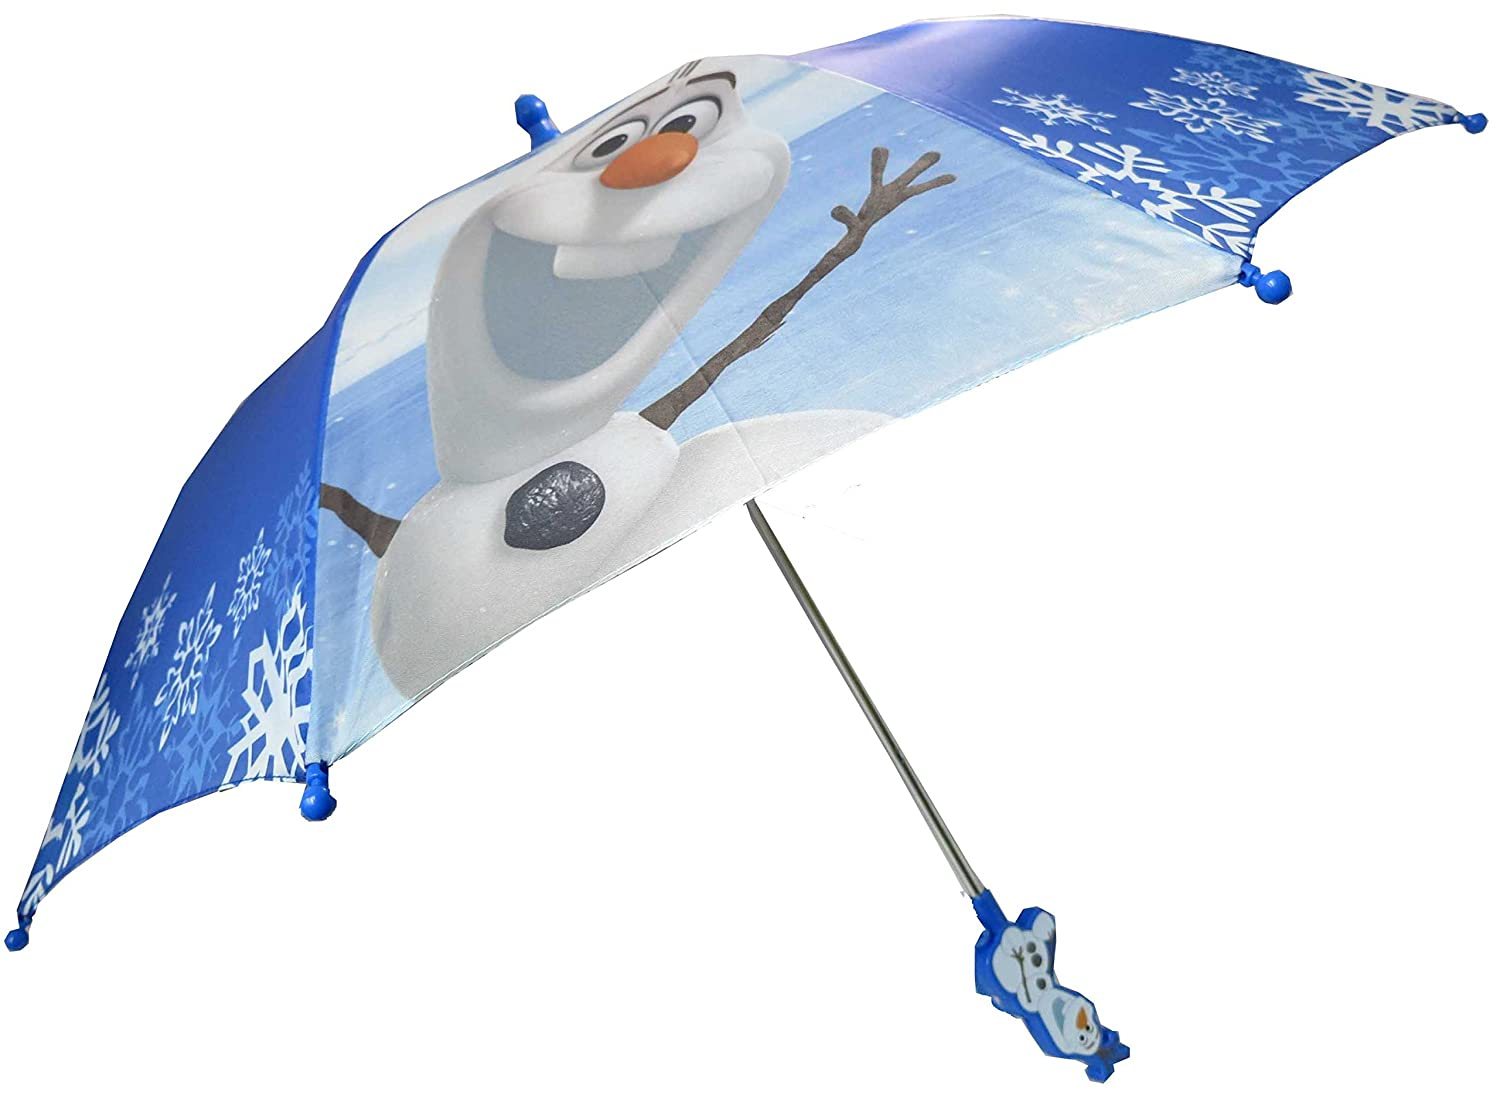 Disney Frozen Olaf Umbrella